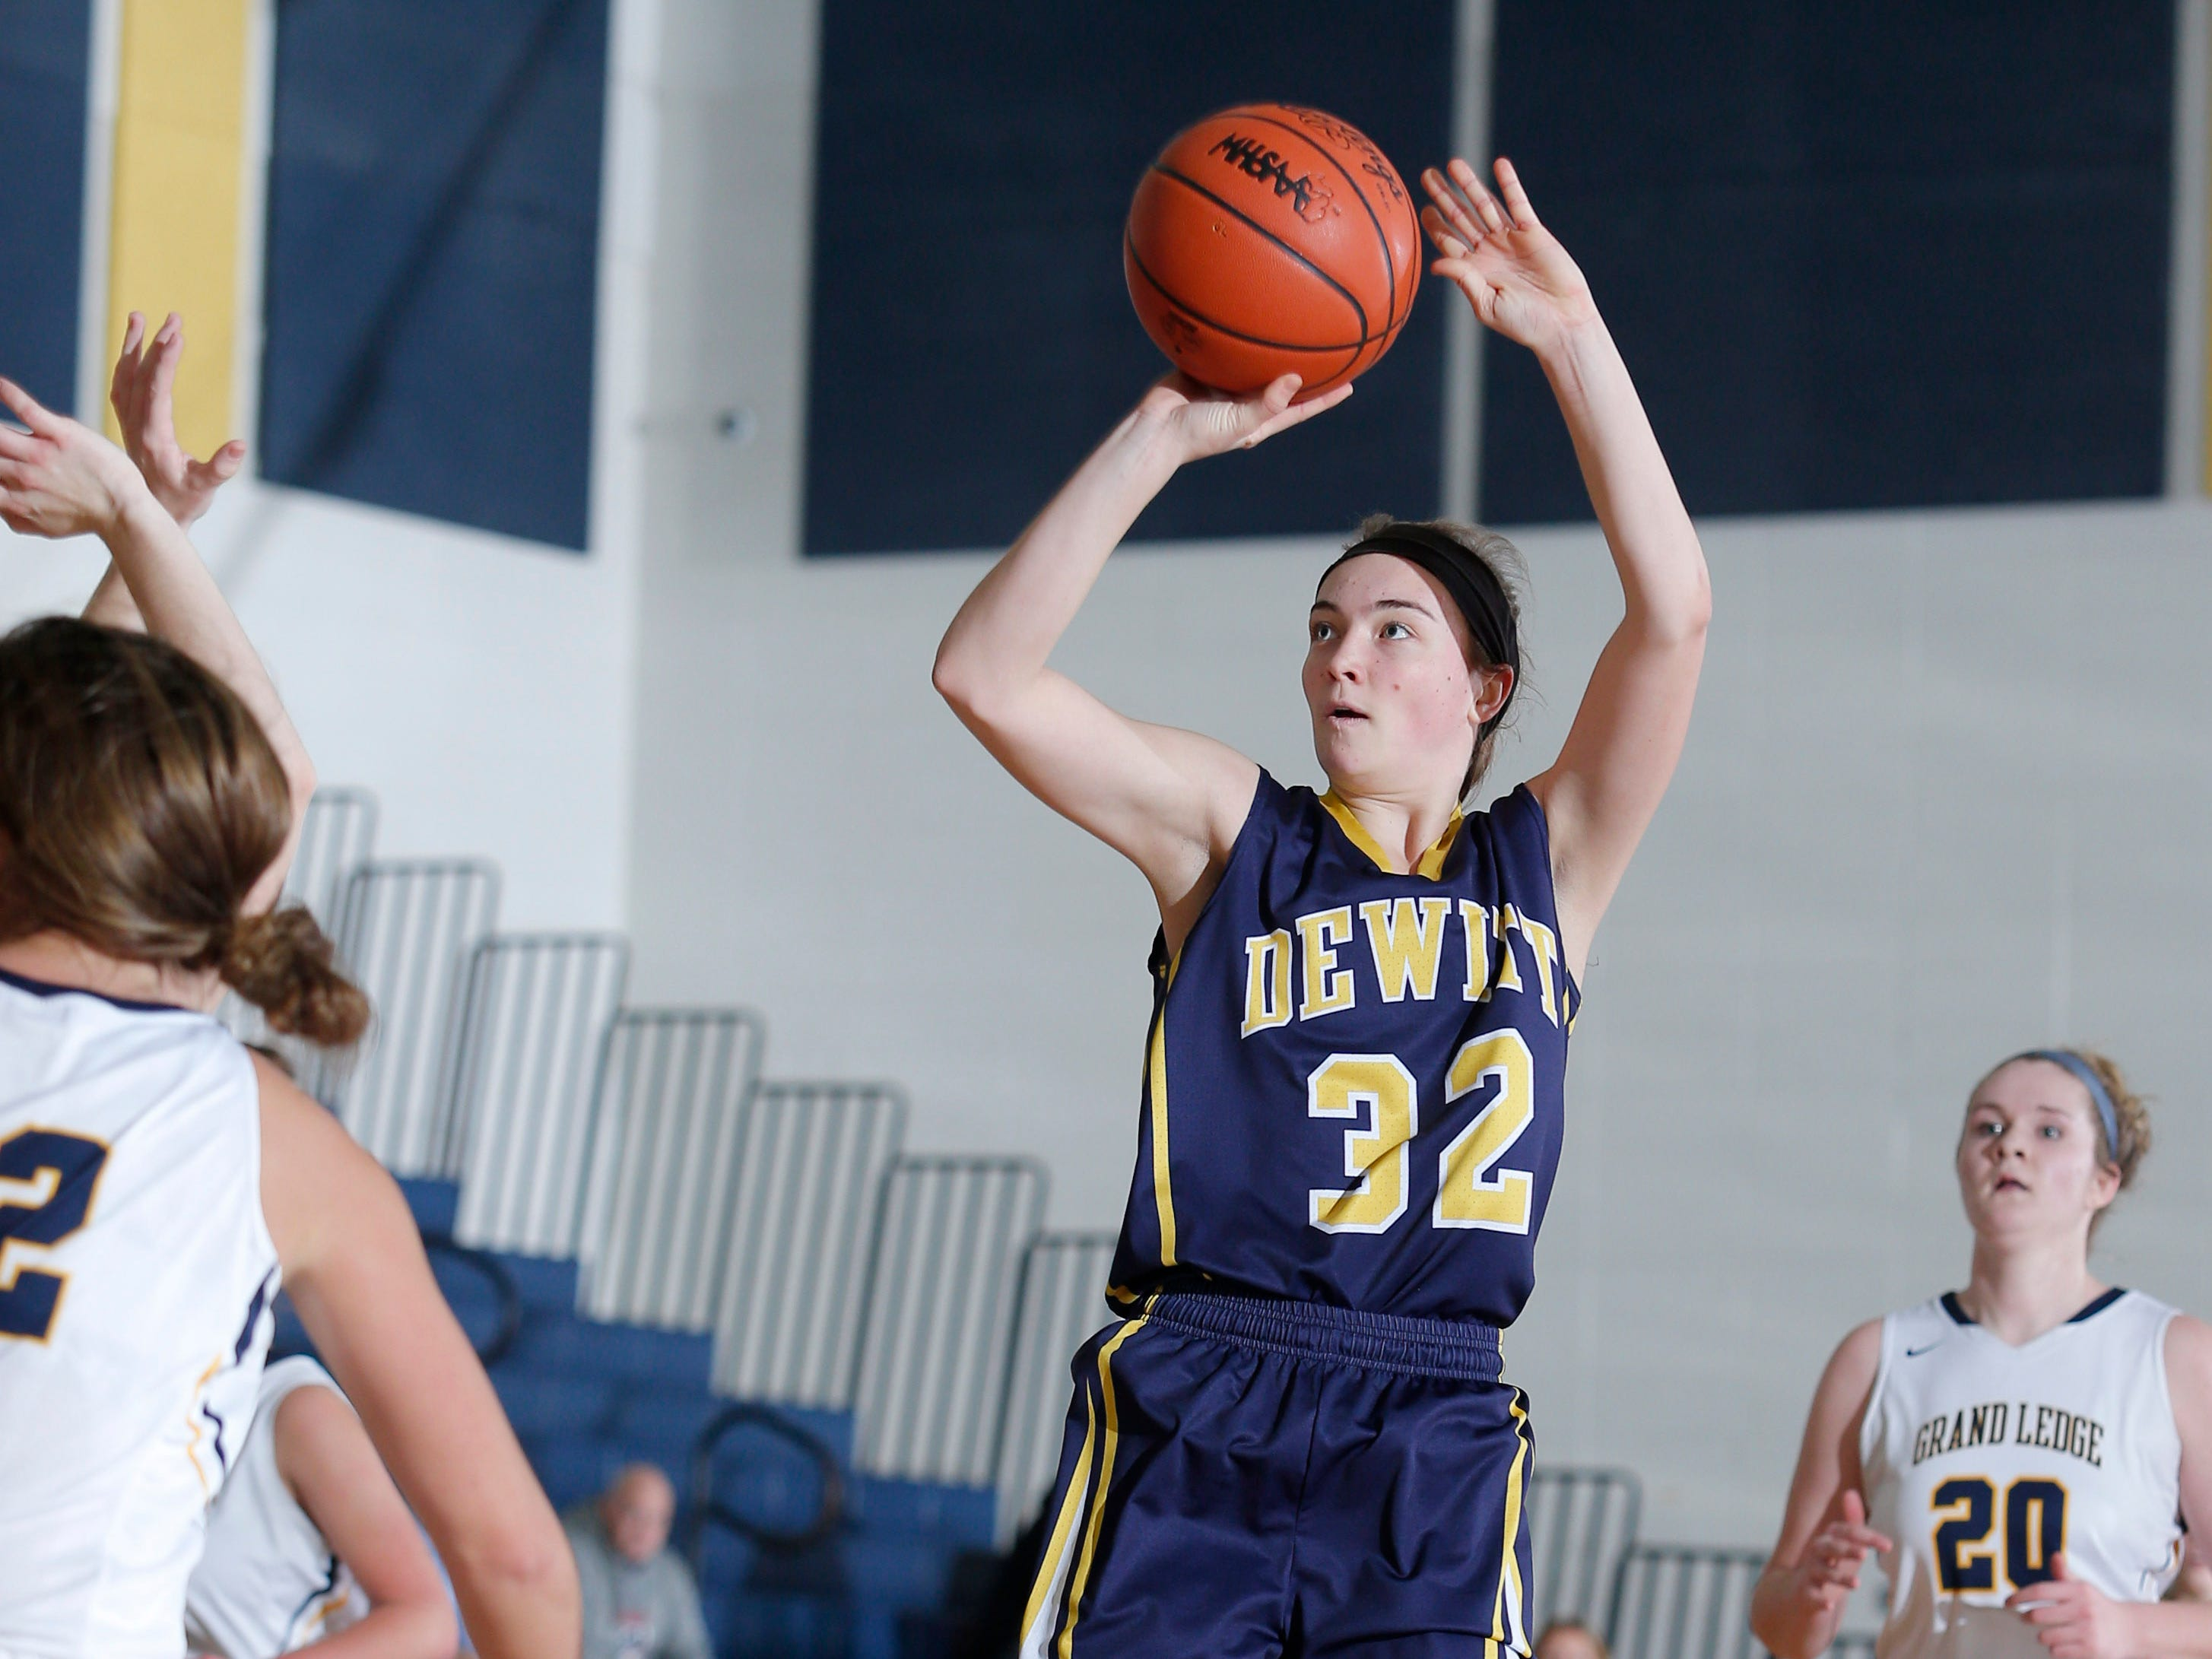 DeWitt's Maddie Petersen (32) shoots against Grand Ledge, Tuesday, Jan. 15, 2019, in Grand Ledge, Mich.